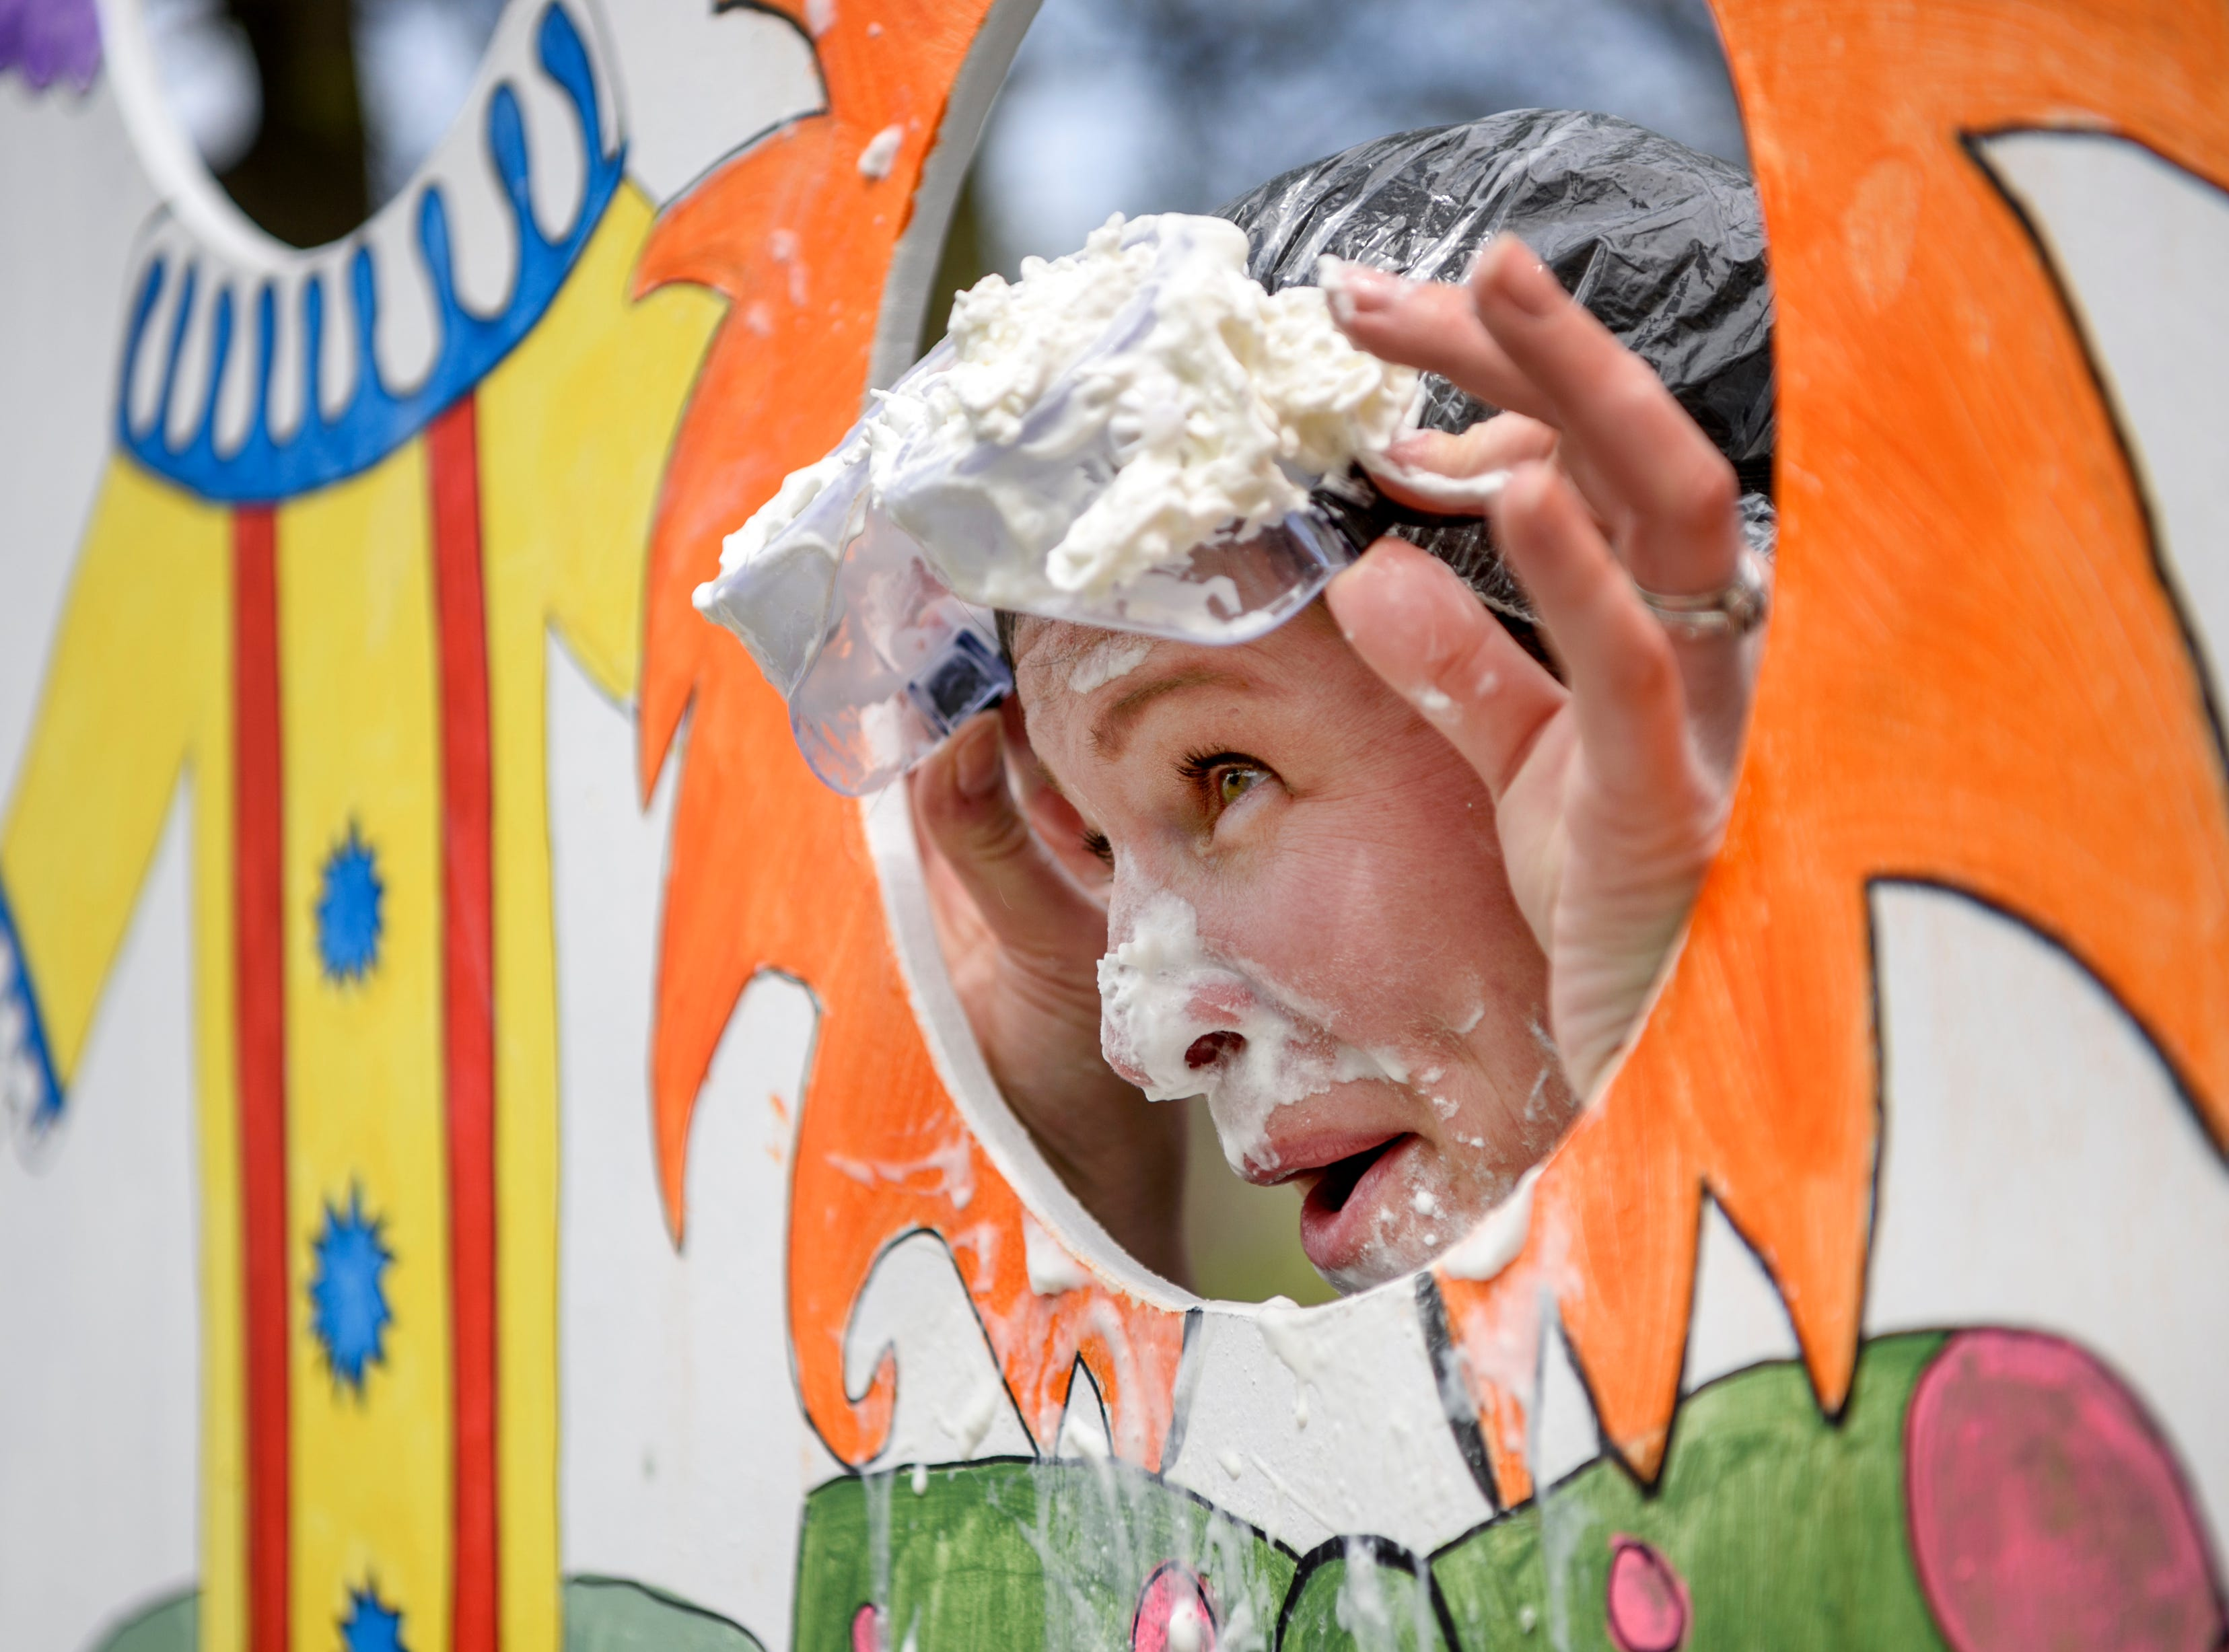 Billie Walker volunteers to continually have whipped cream smashed in her face to raise money for the Community Action Program of Evansville & Vanderburgh County, Inc. (CAPE) Head Start Childhood Education programs during CAPE's annual end of the year Family Fun Day at Wesselman Park in Evansville, Ind., Friday, April 12, 2019.